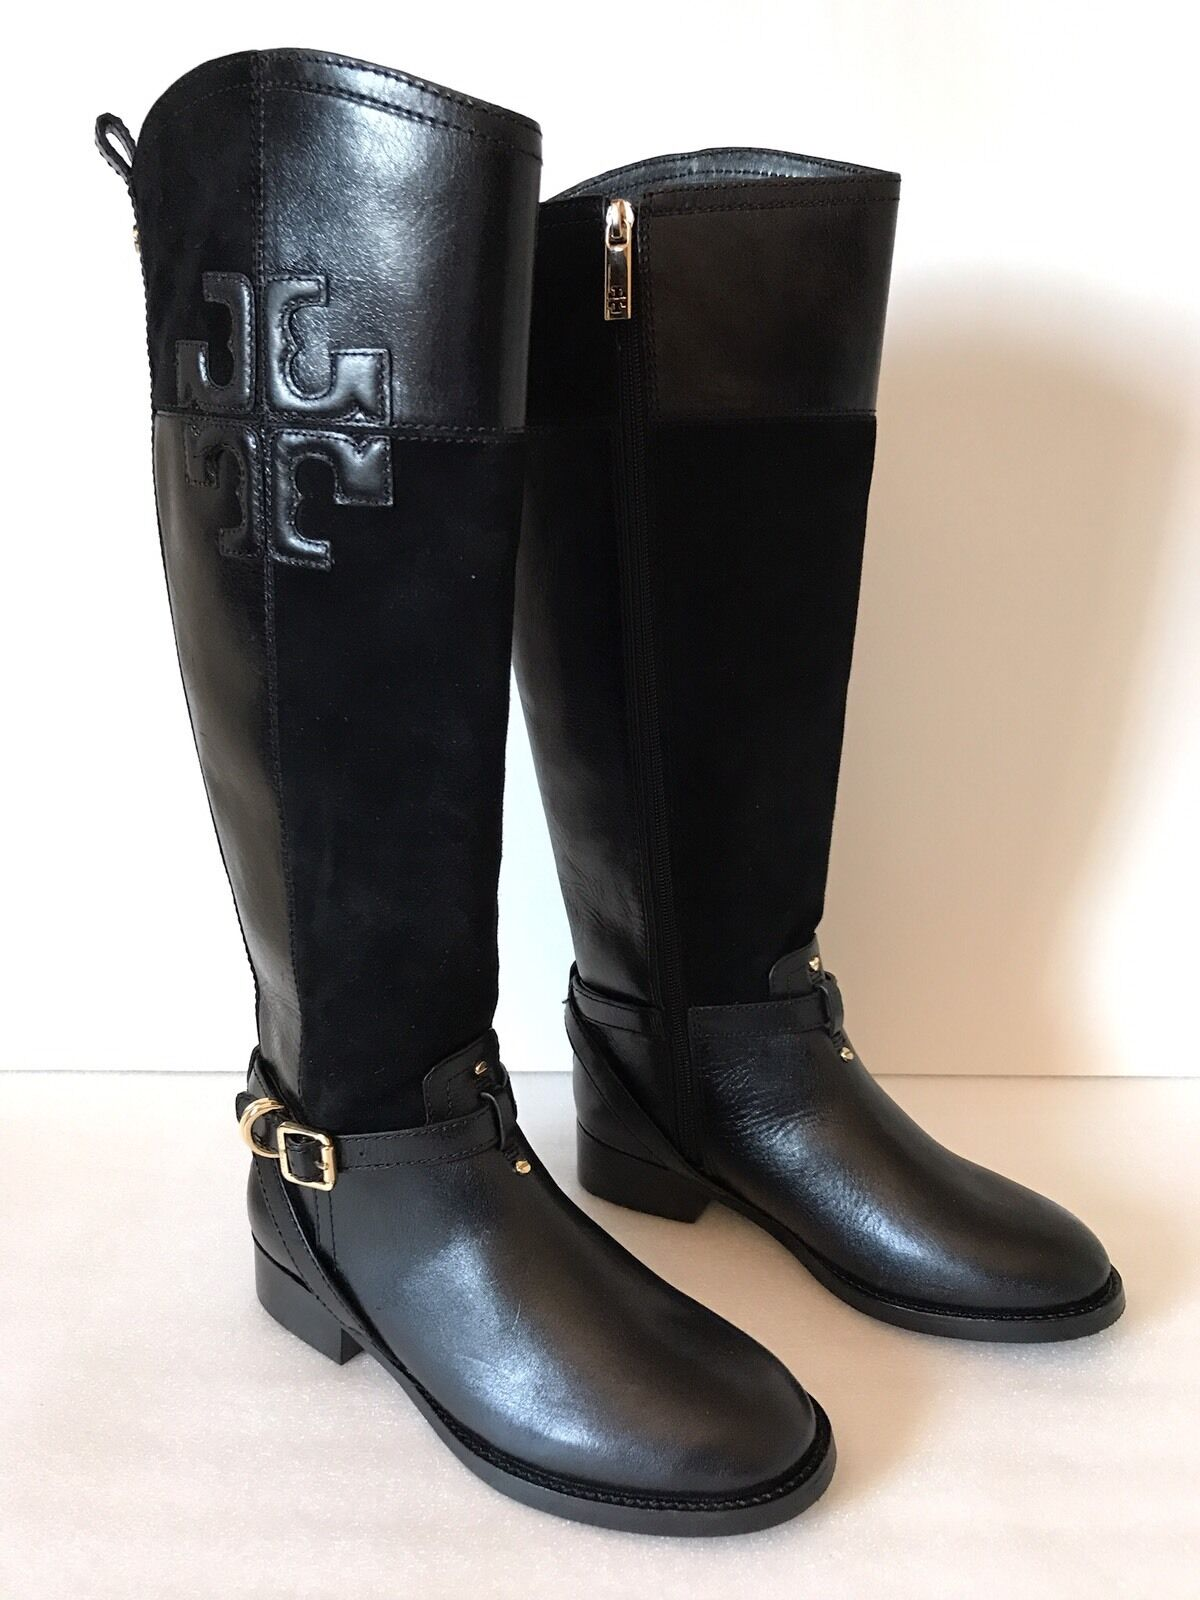 Tory Burch Lizzie Leather Suede Riding Boots Black Size 5M